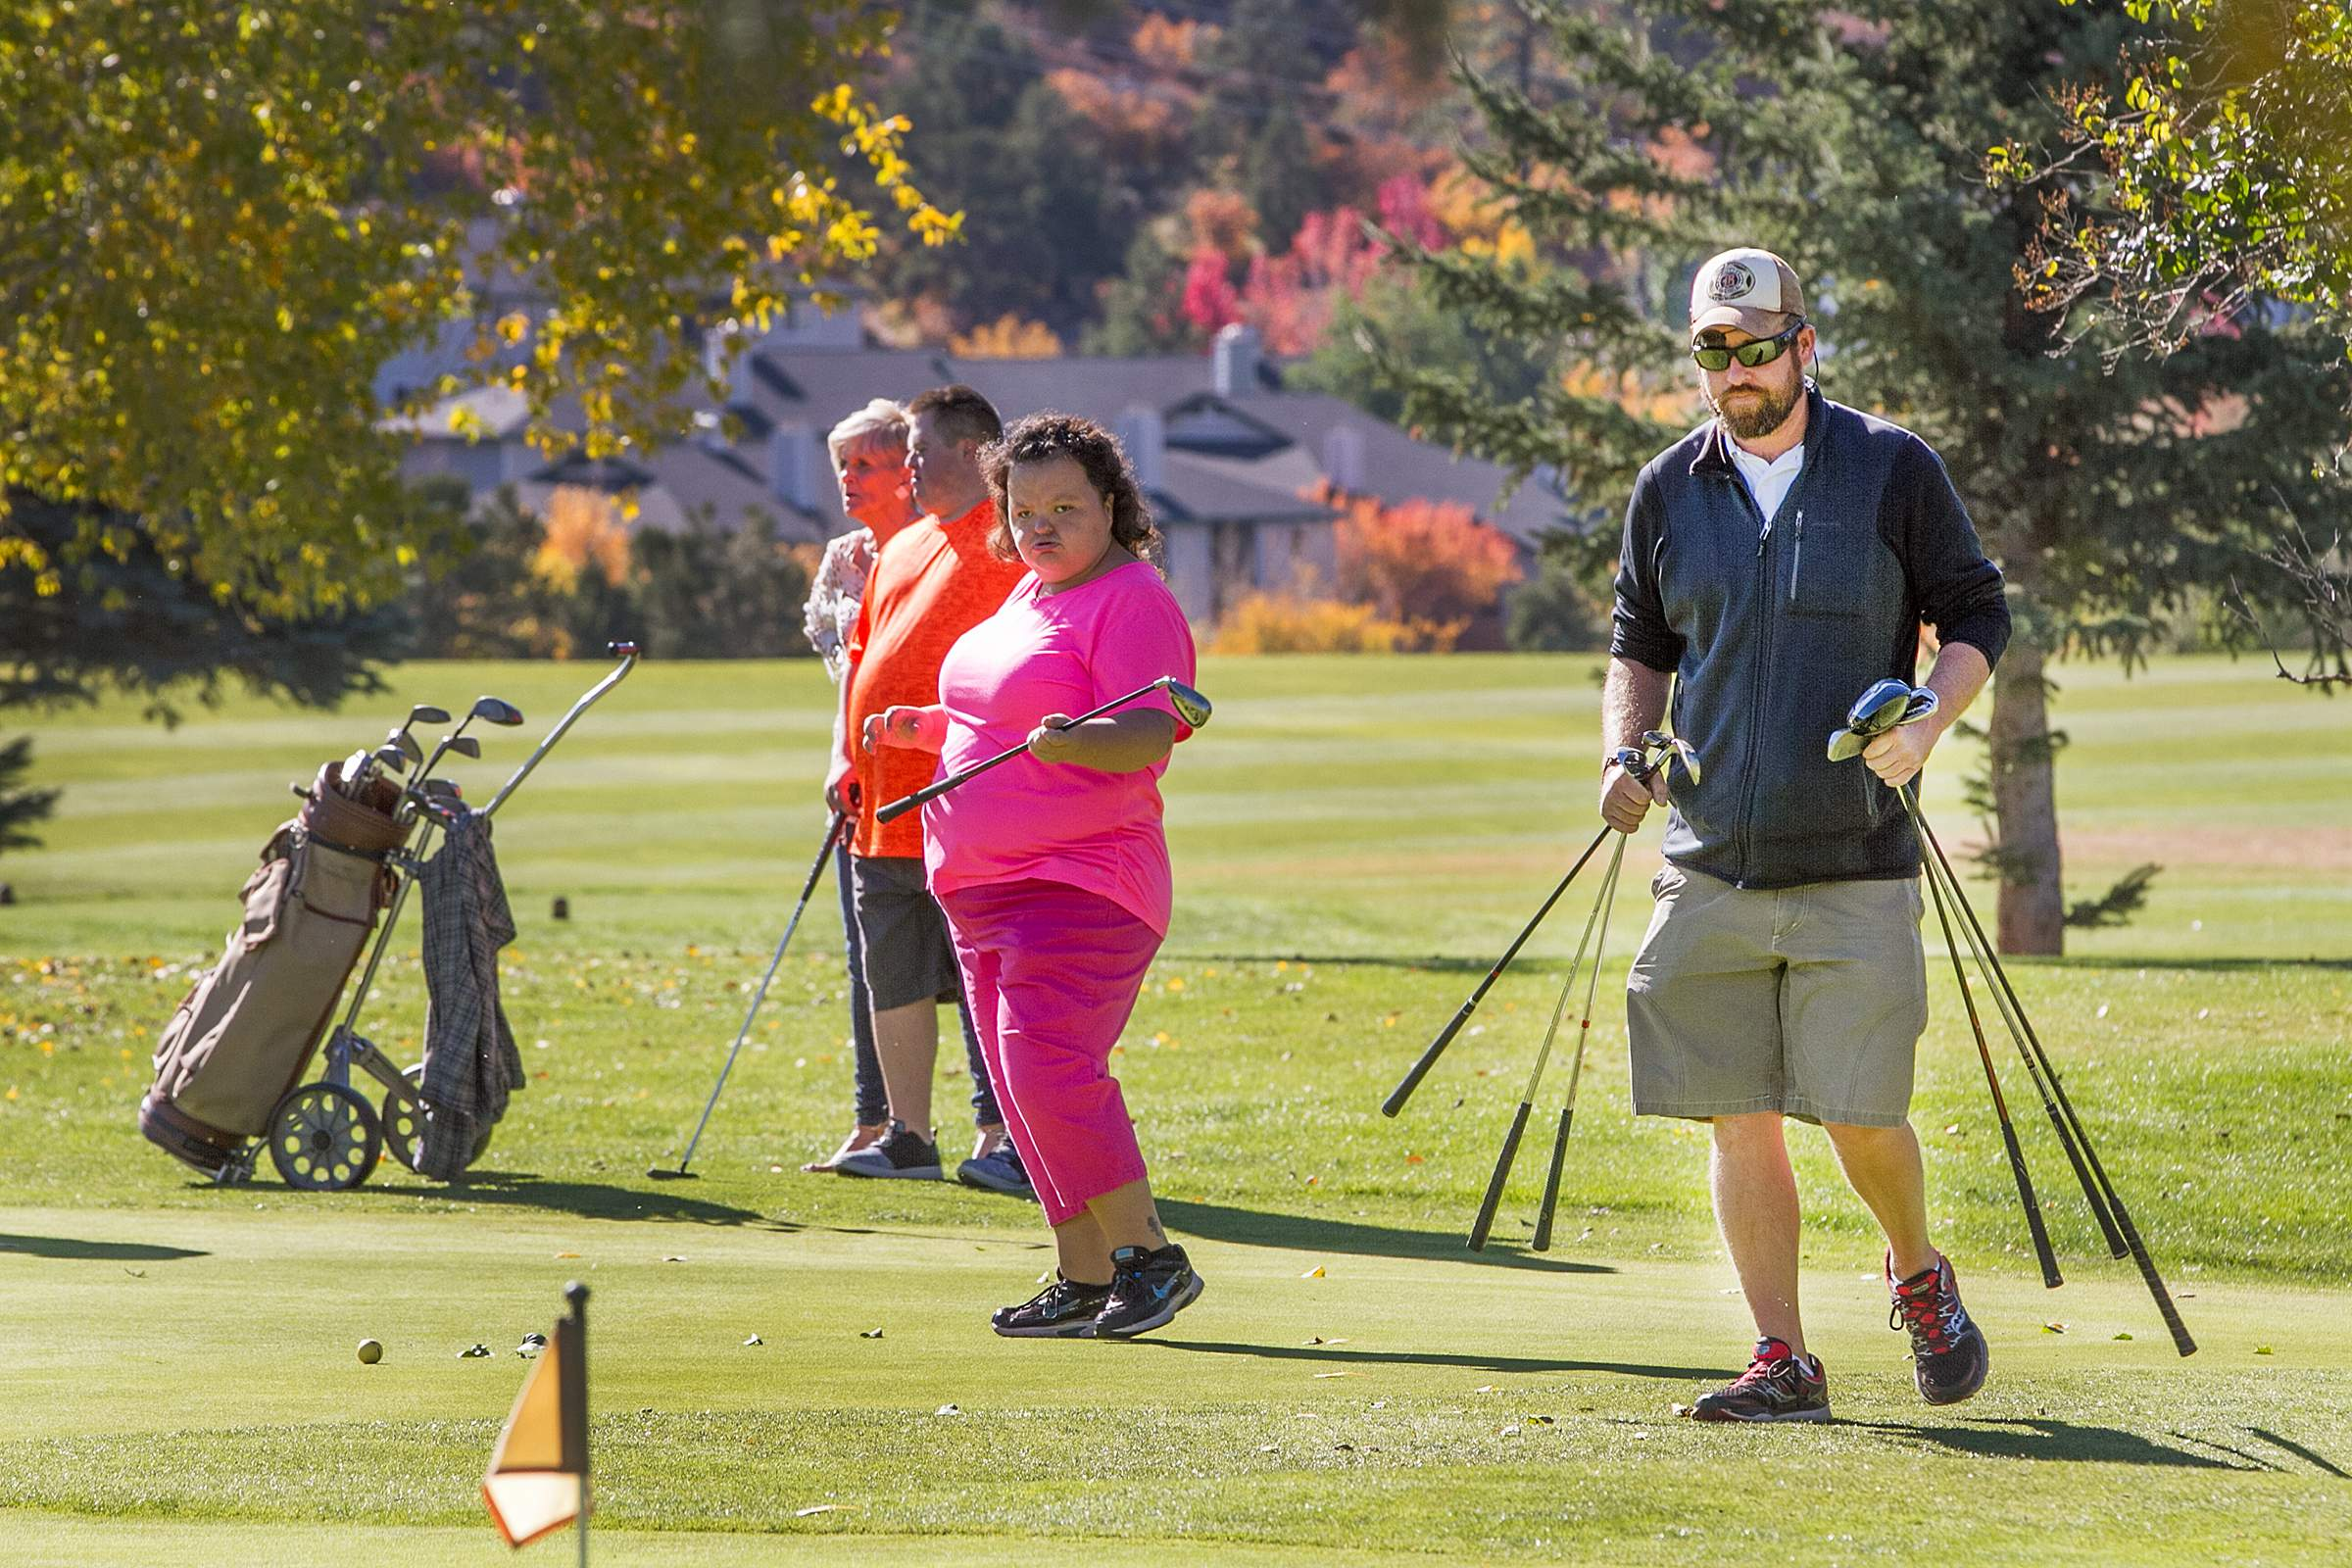 golf 40 år Durango man starts golf clinic for those with disabilities golf 40 år